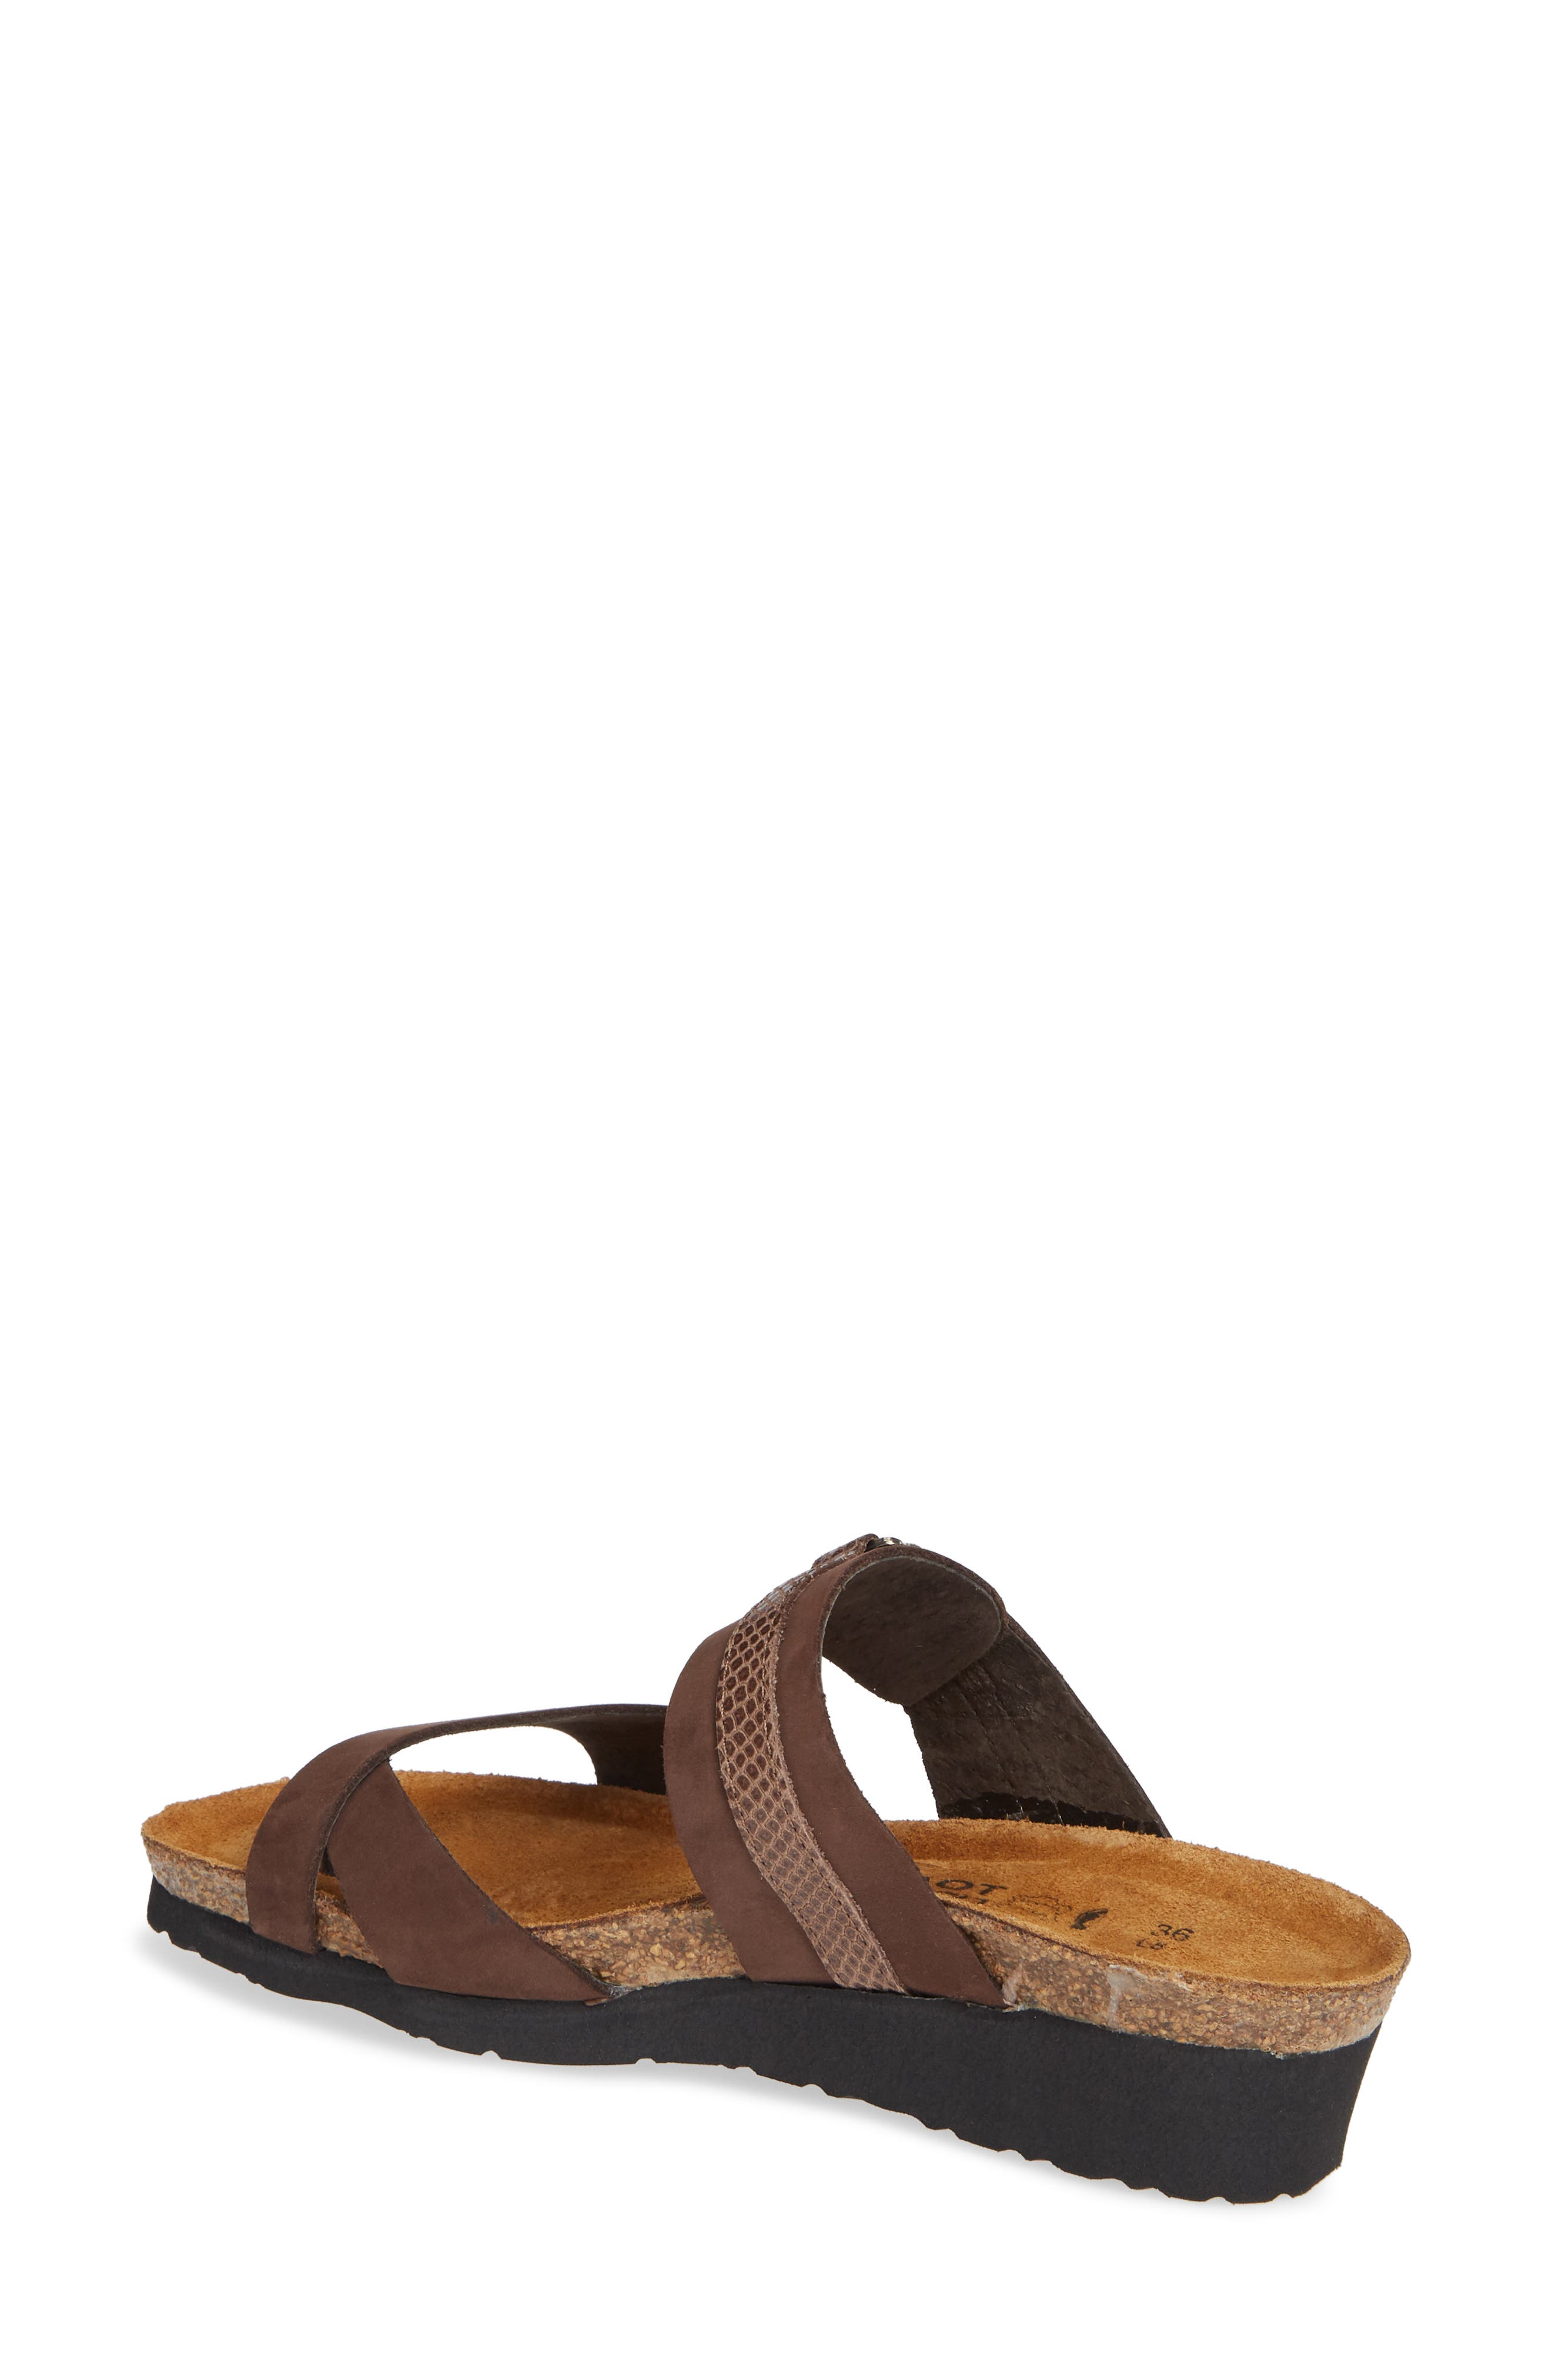 NAOT, Jessica Sandal, Alternate thumbnail 2, color, COFFEE BEAN NUBUCK LEATHER